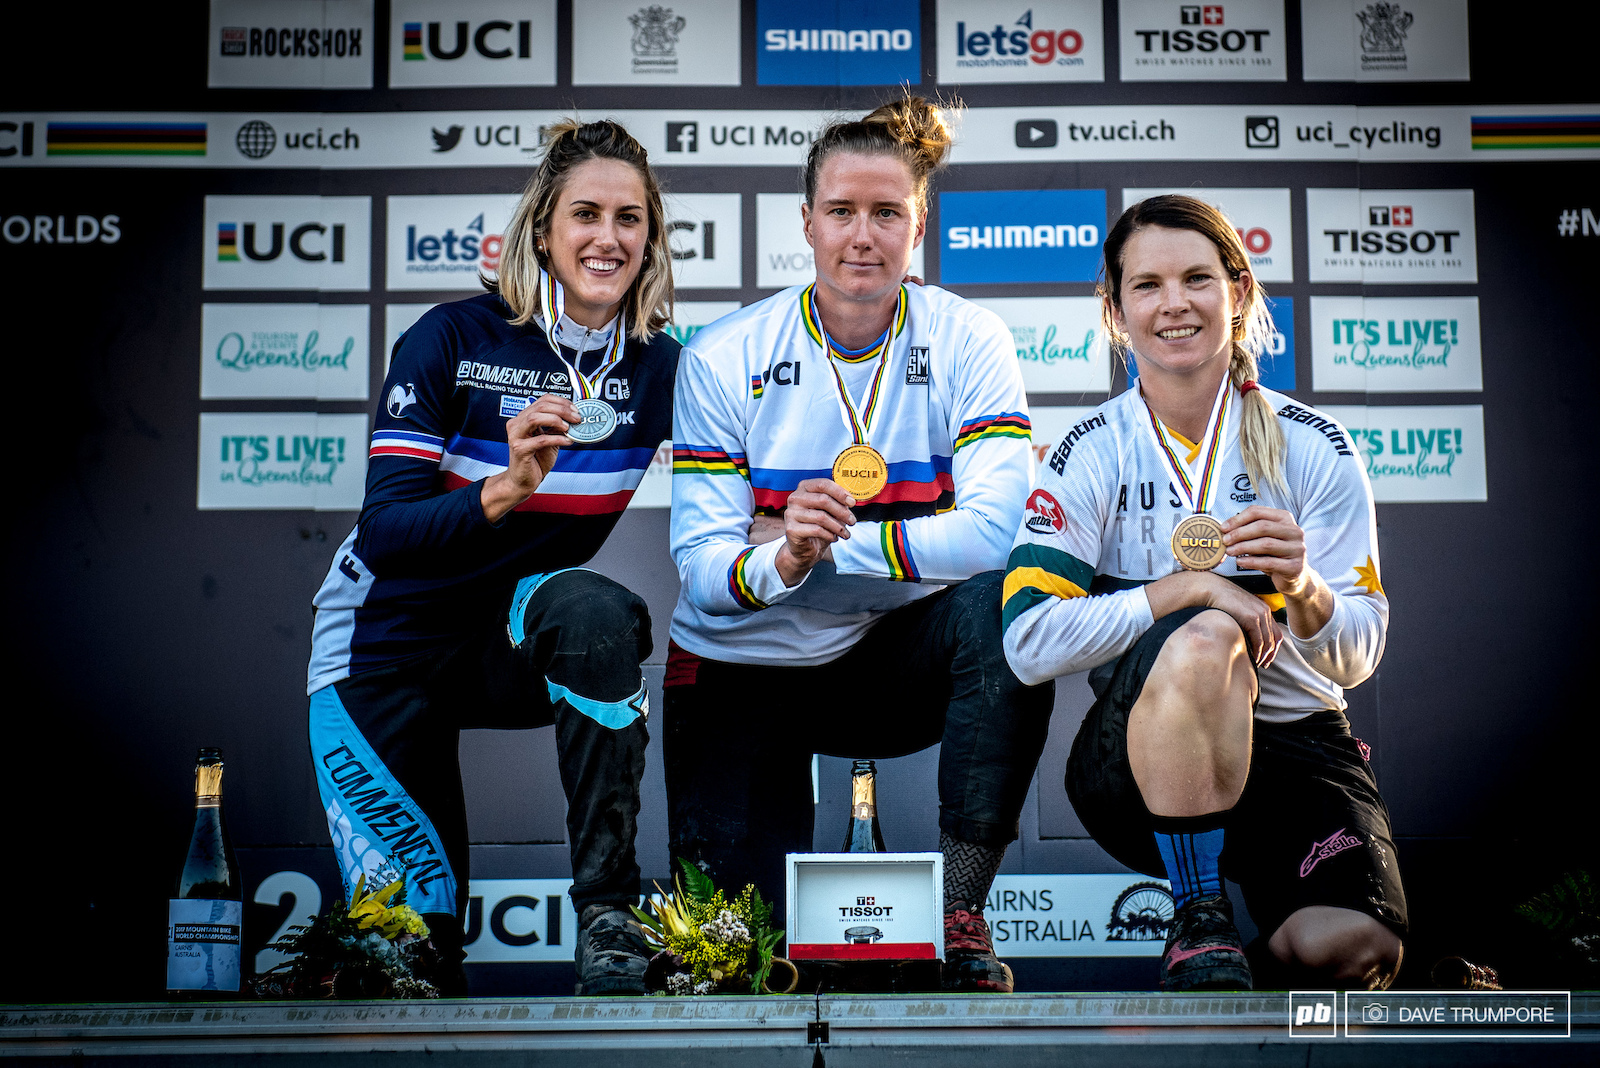 The fastest ladies in the world and their shiny new gold silver and bronze hardware.